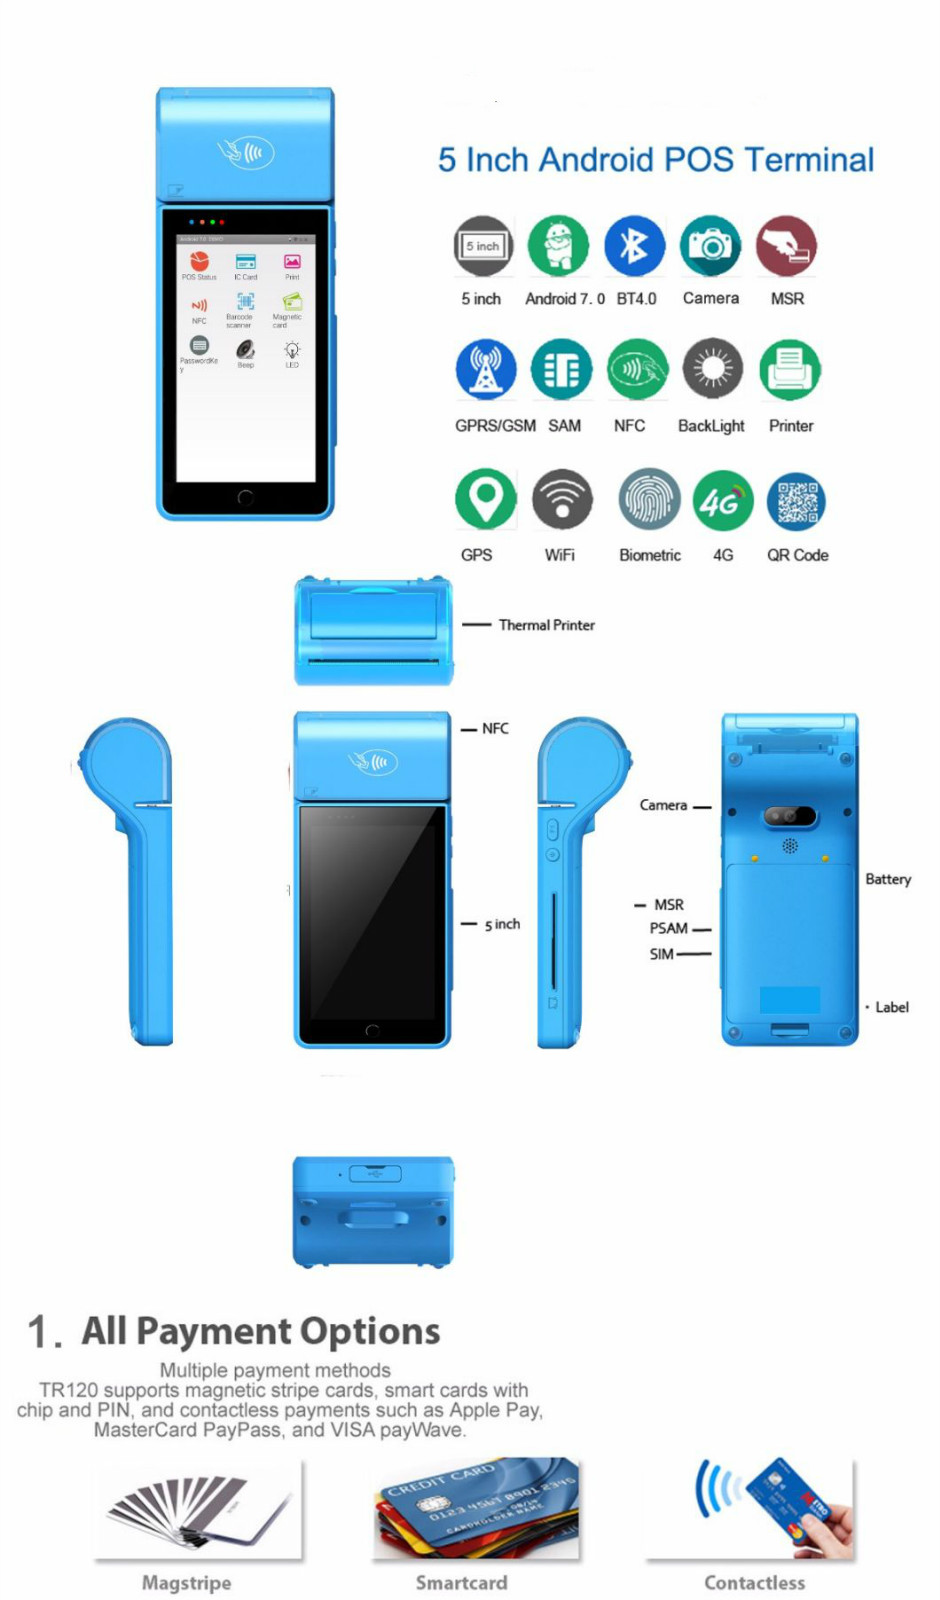 Handheld-Smart-POS-Terminals-Android-7-0-Handheld-POS-Terminal-5-Inch-POS-Machine-Support-Electronic-Mobile-Payment-EMV-Pvi-Certificated-Mj-St8050b (10)_meitu_2